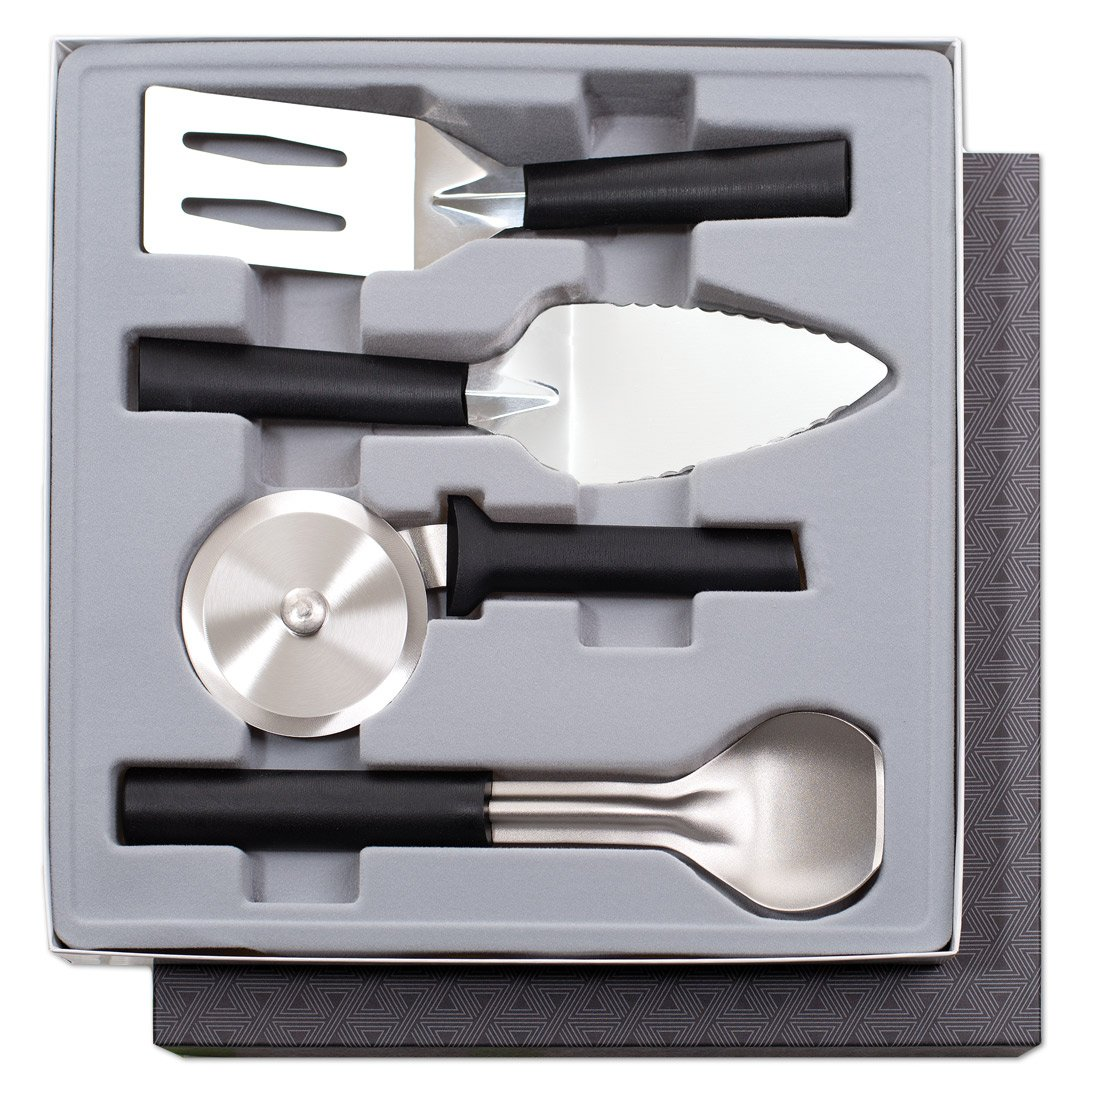 Rada Cutlery 4-Piece Kitchen Utensil Gift Set - Stainless Steel Set With Black Stainless Steel Resin Handles Made in USA